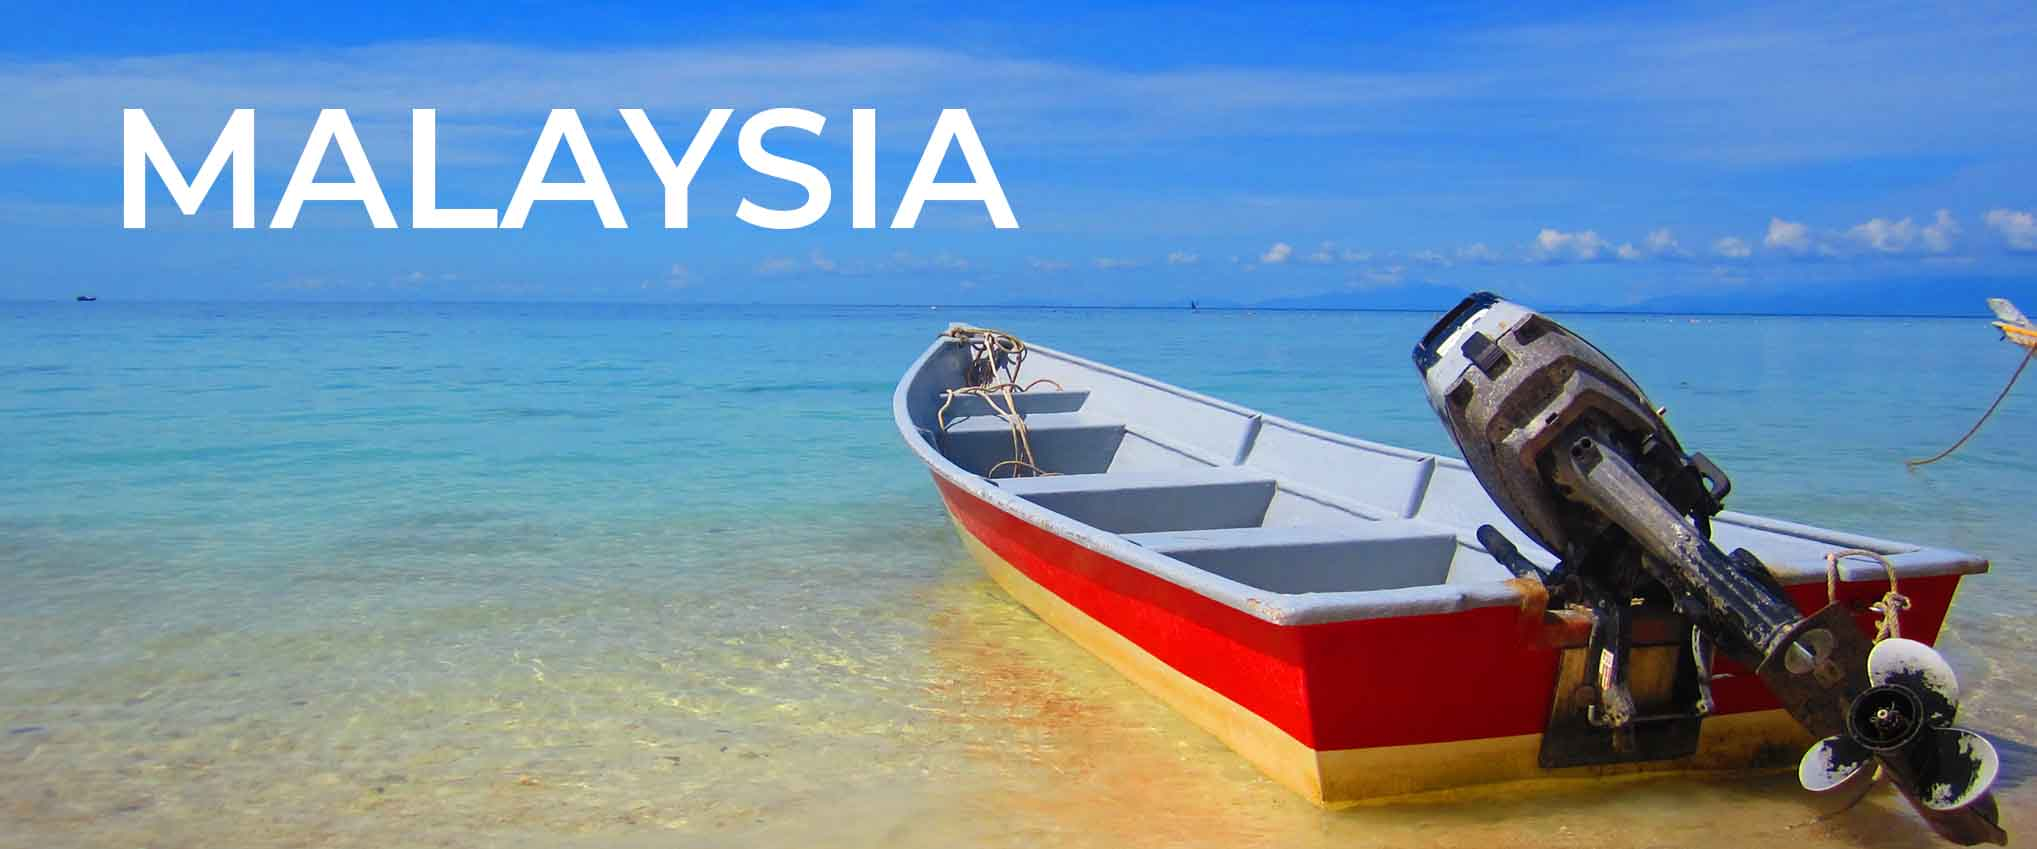 Malaysia-page-banner